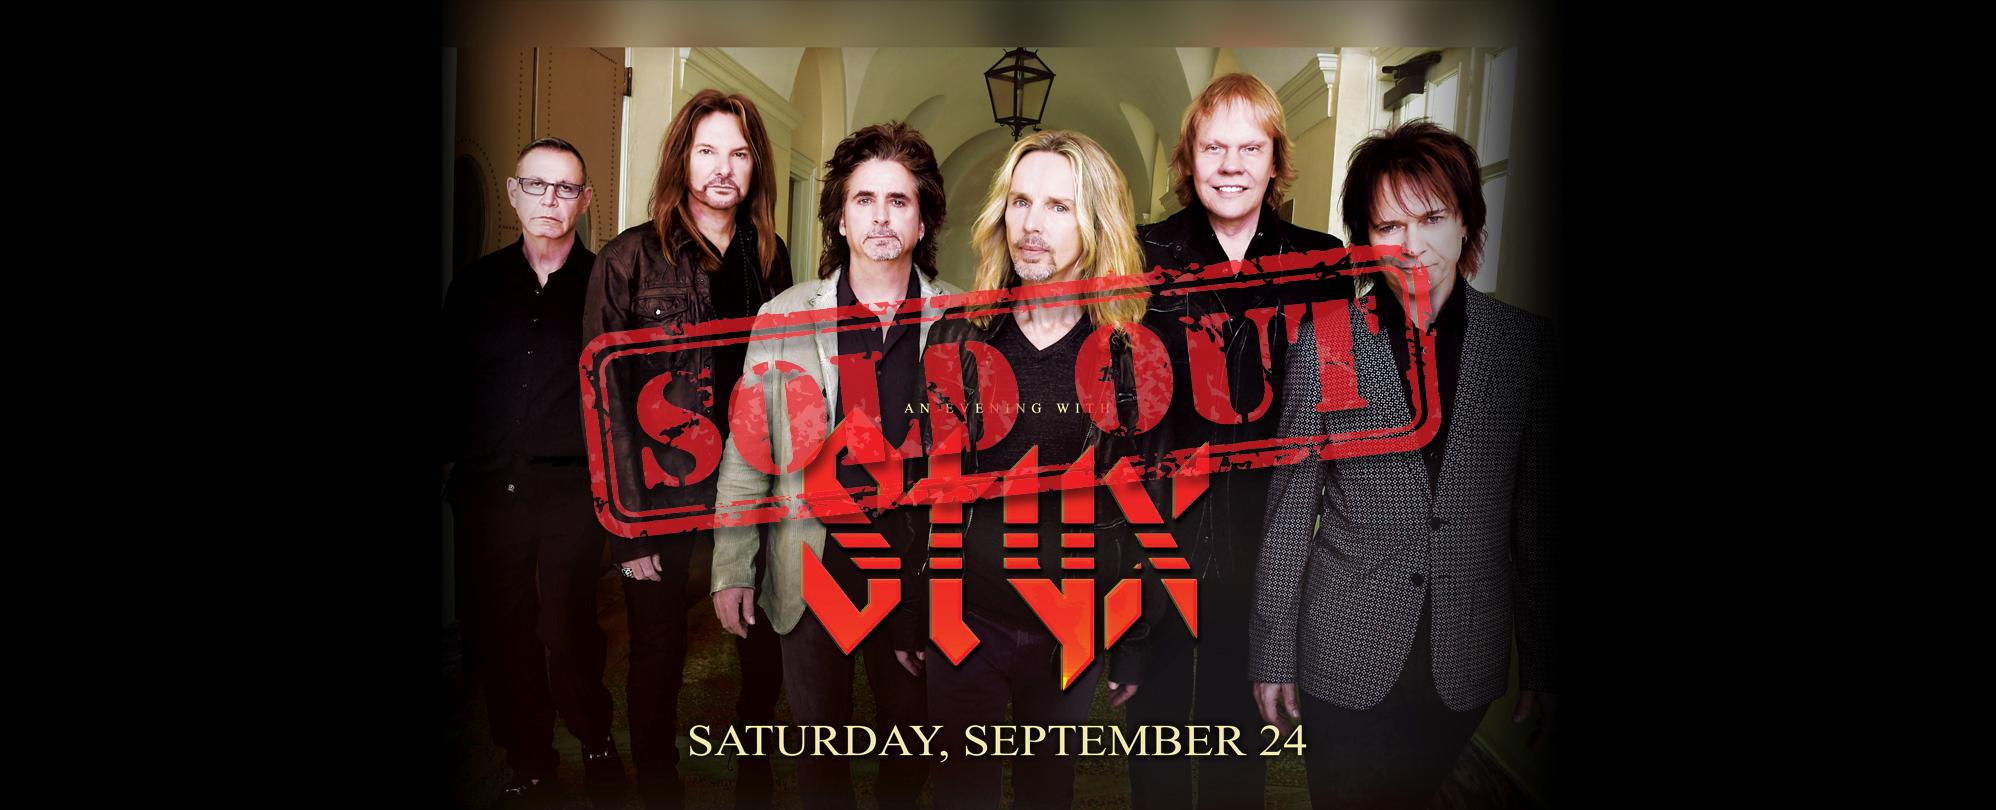 an evening with Styx *SOLD OUT*